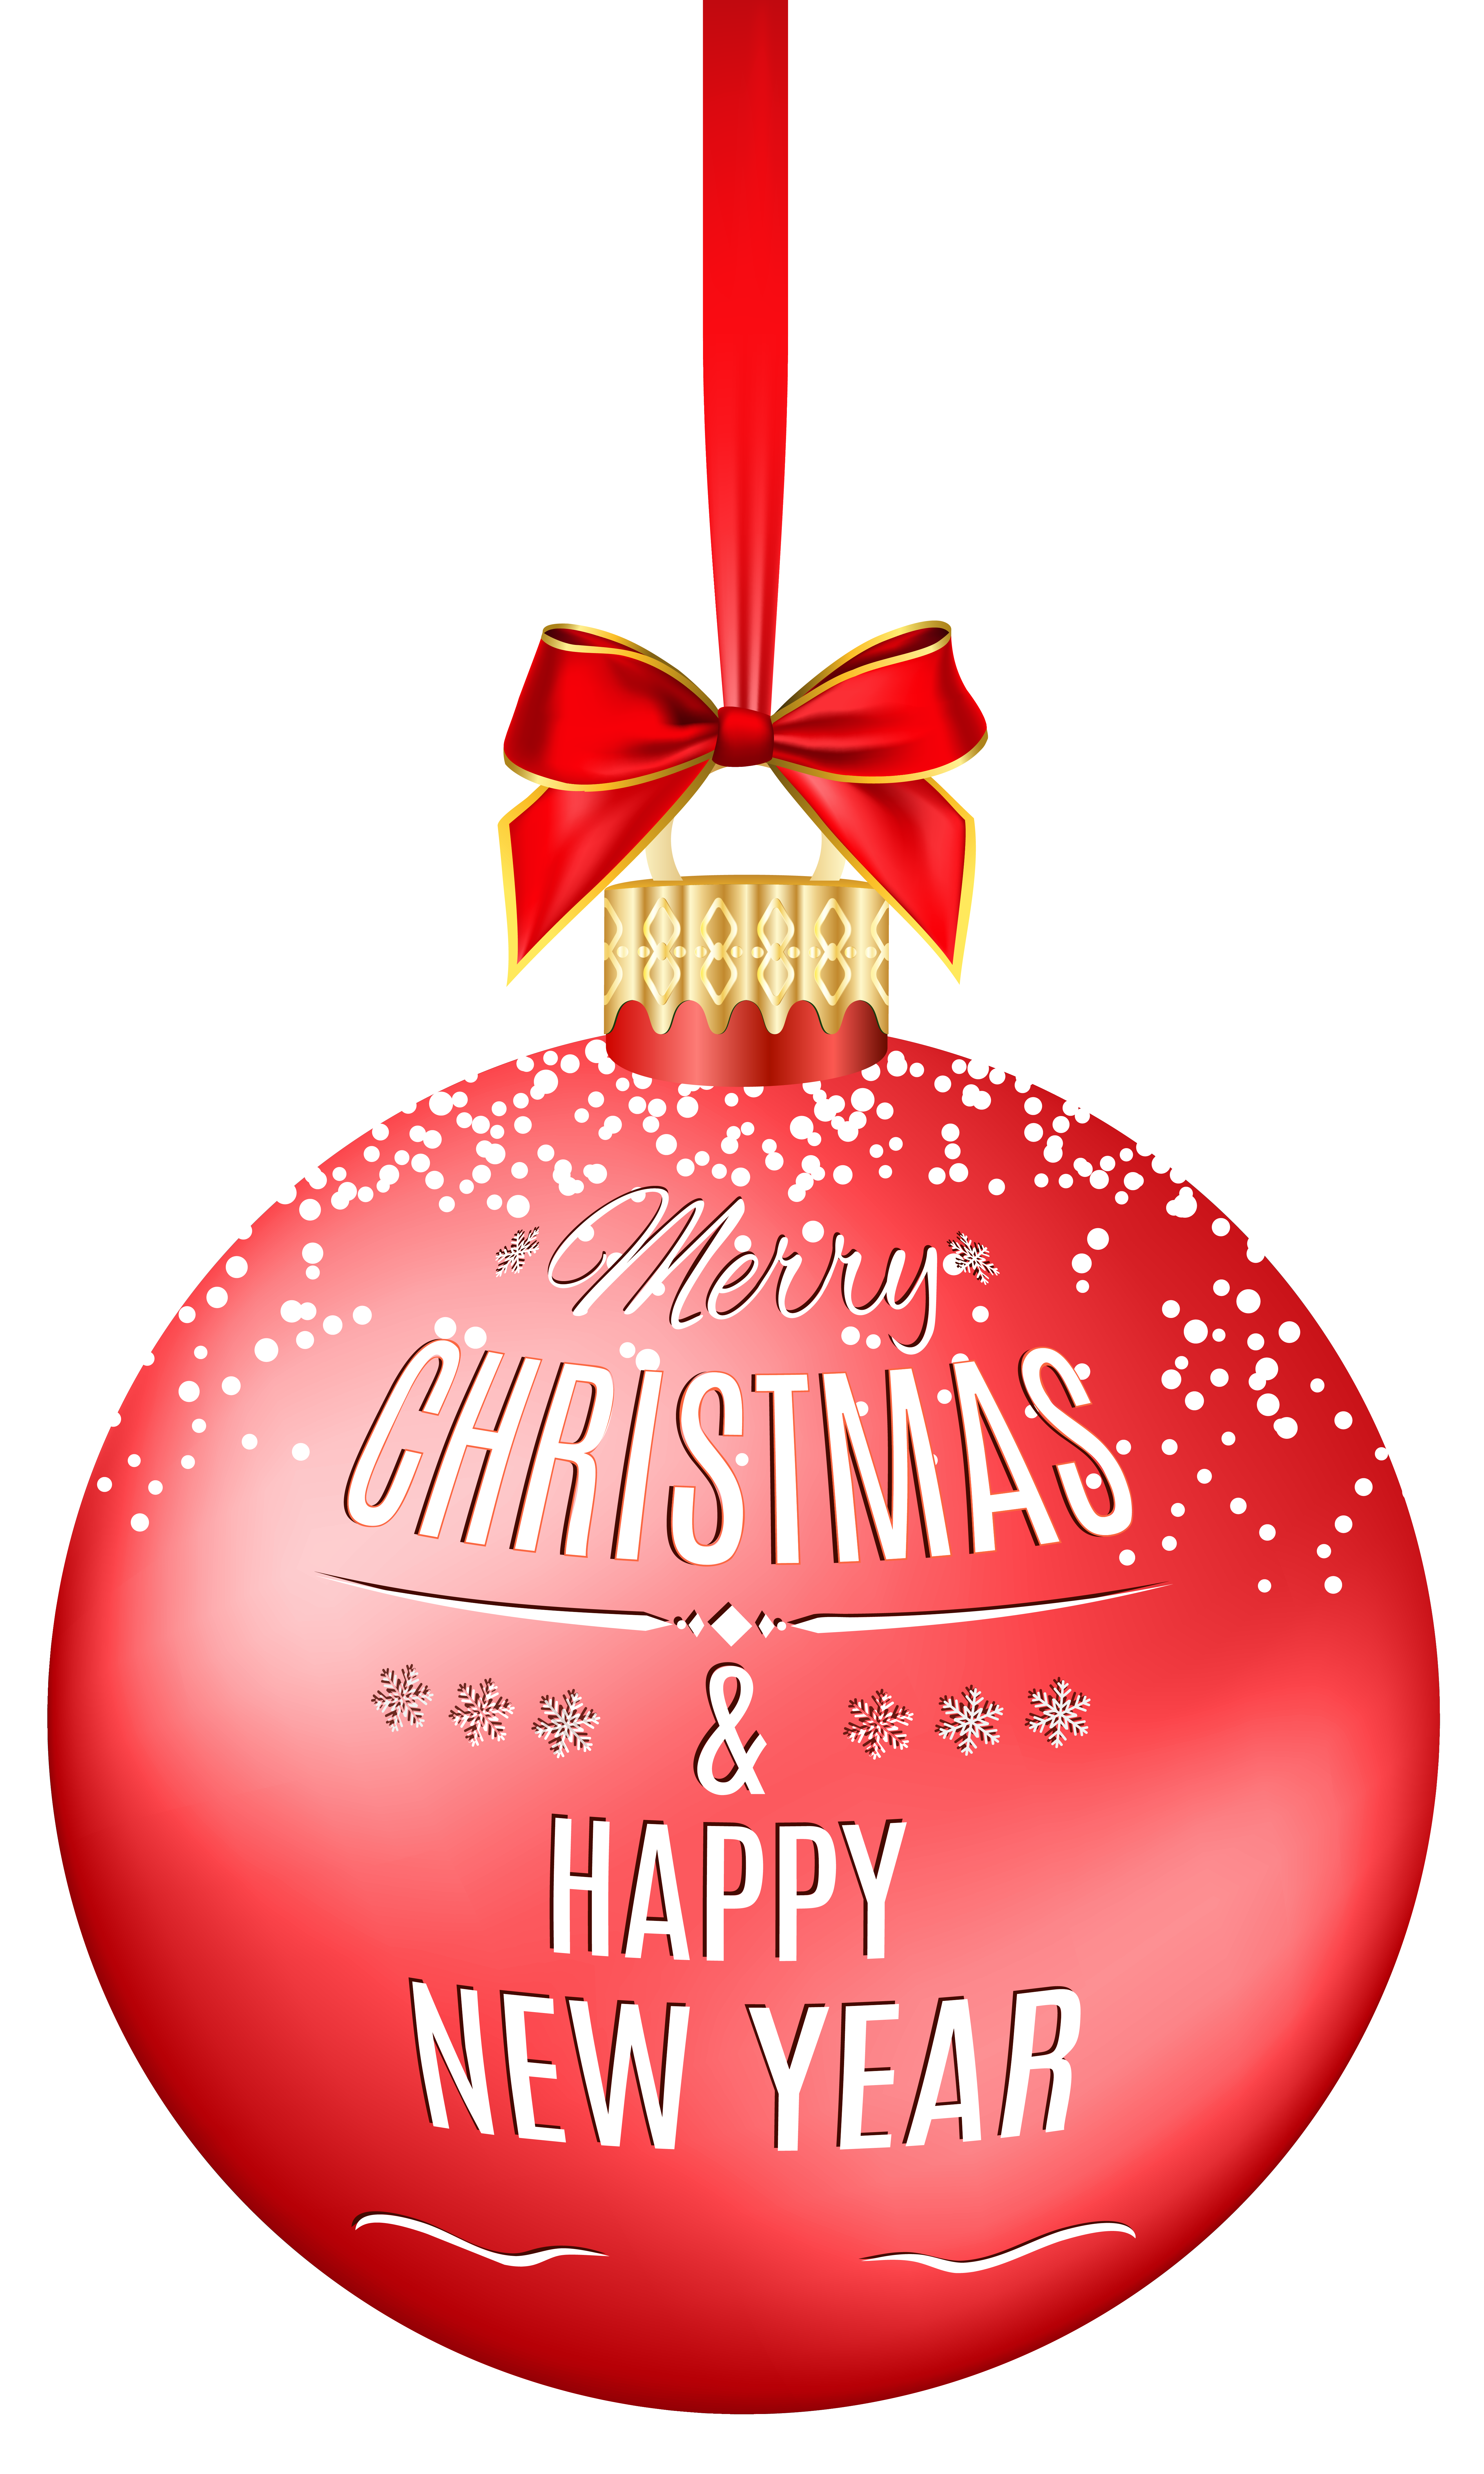 merry christmas clipart ball pencil and color merry #9625